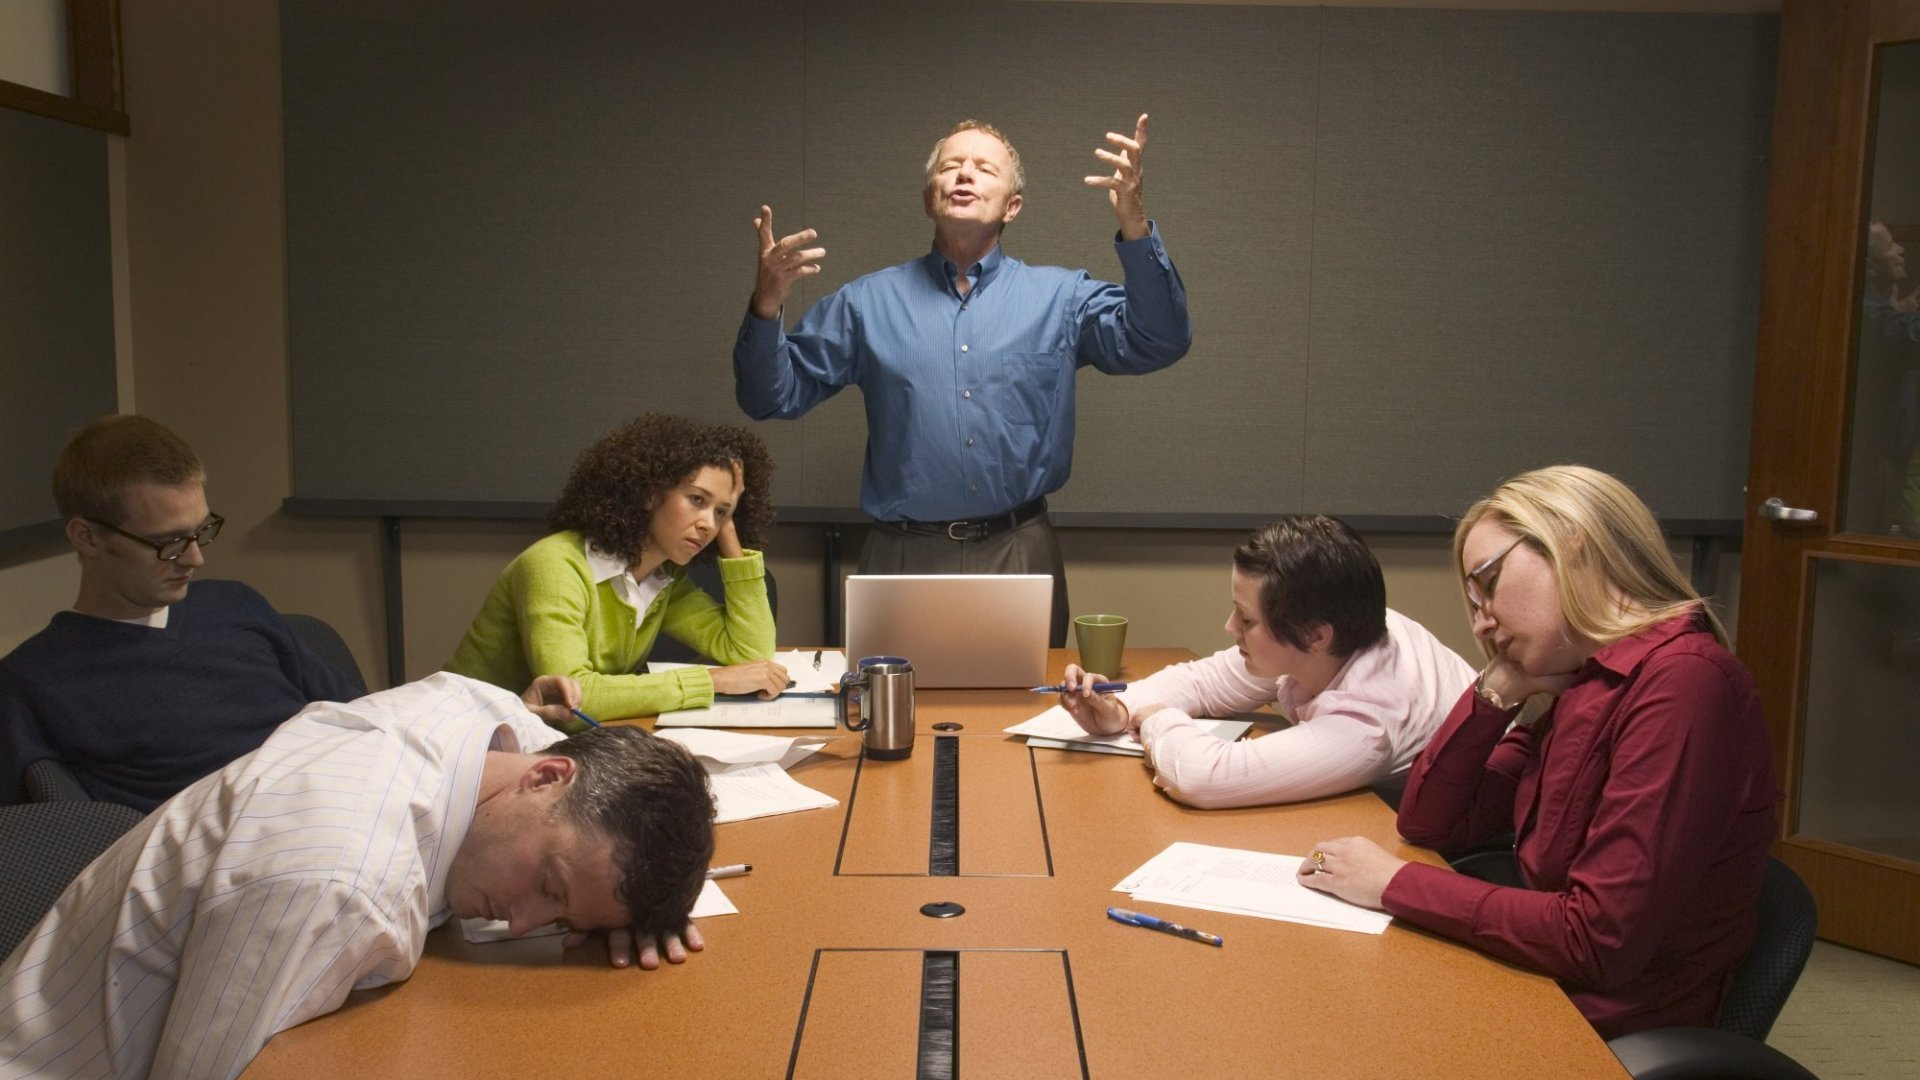 How Corporate-Speak Makes You Stupid, According to Science